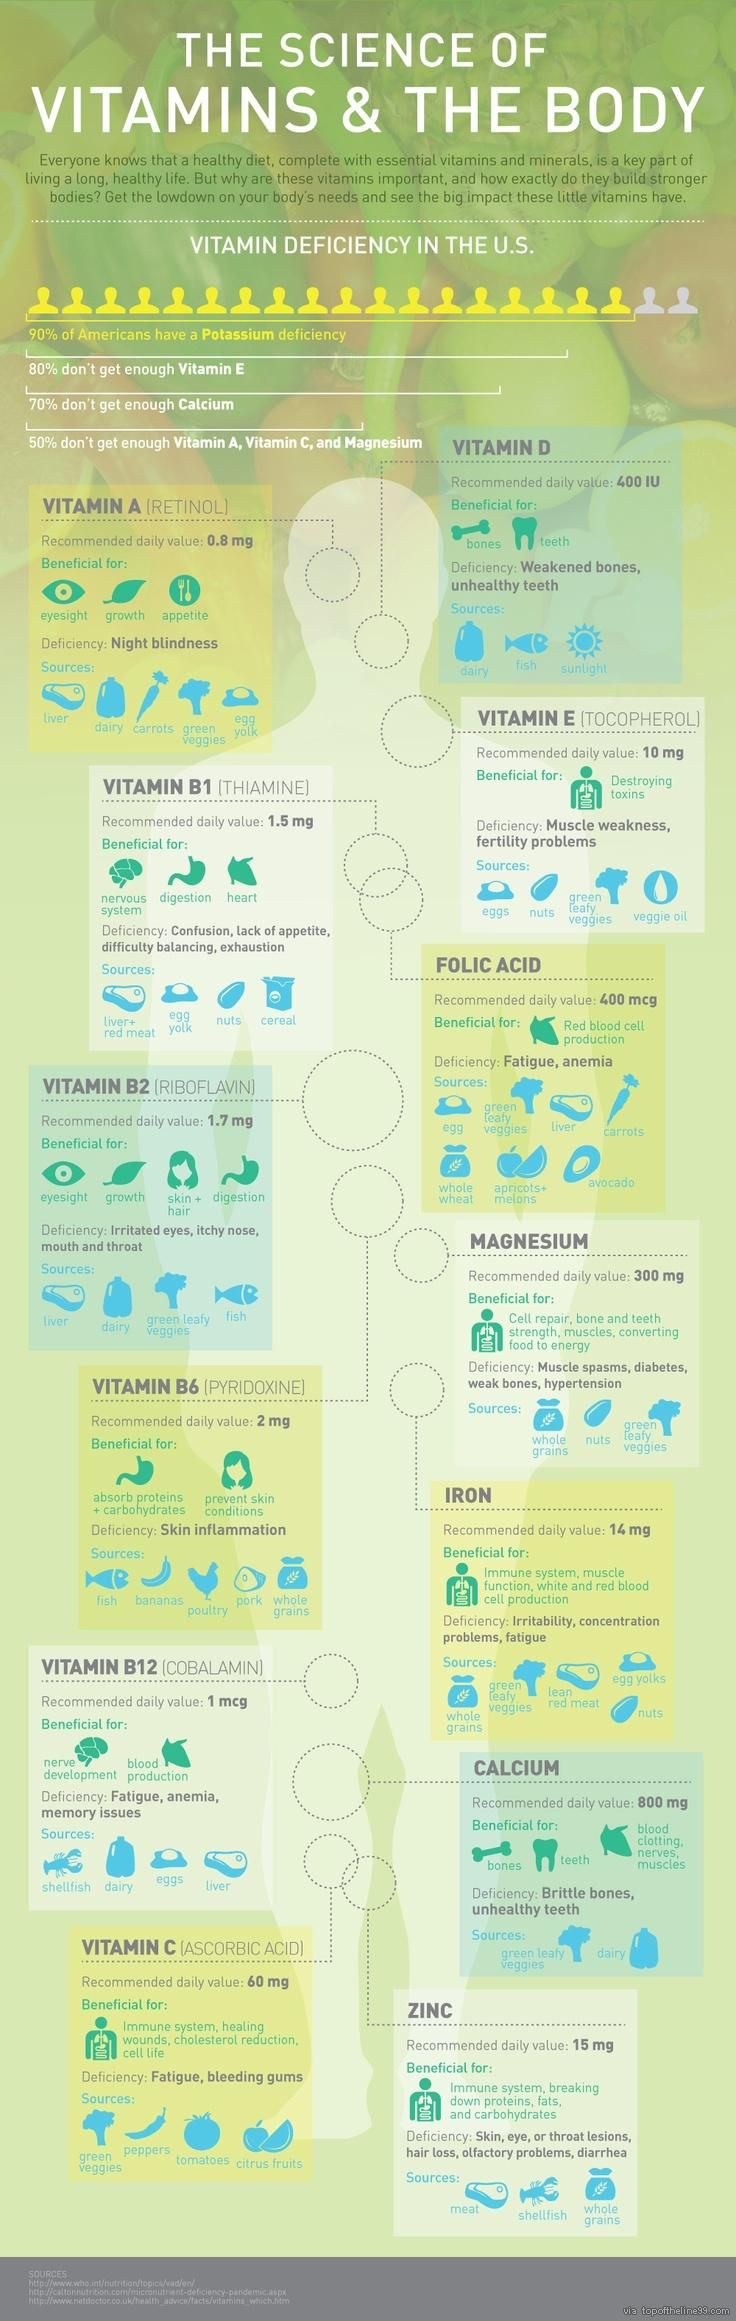 Vitamins and the Body